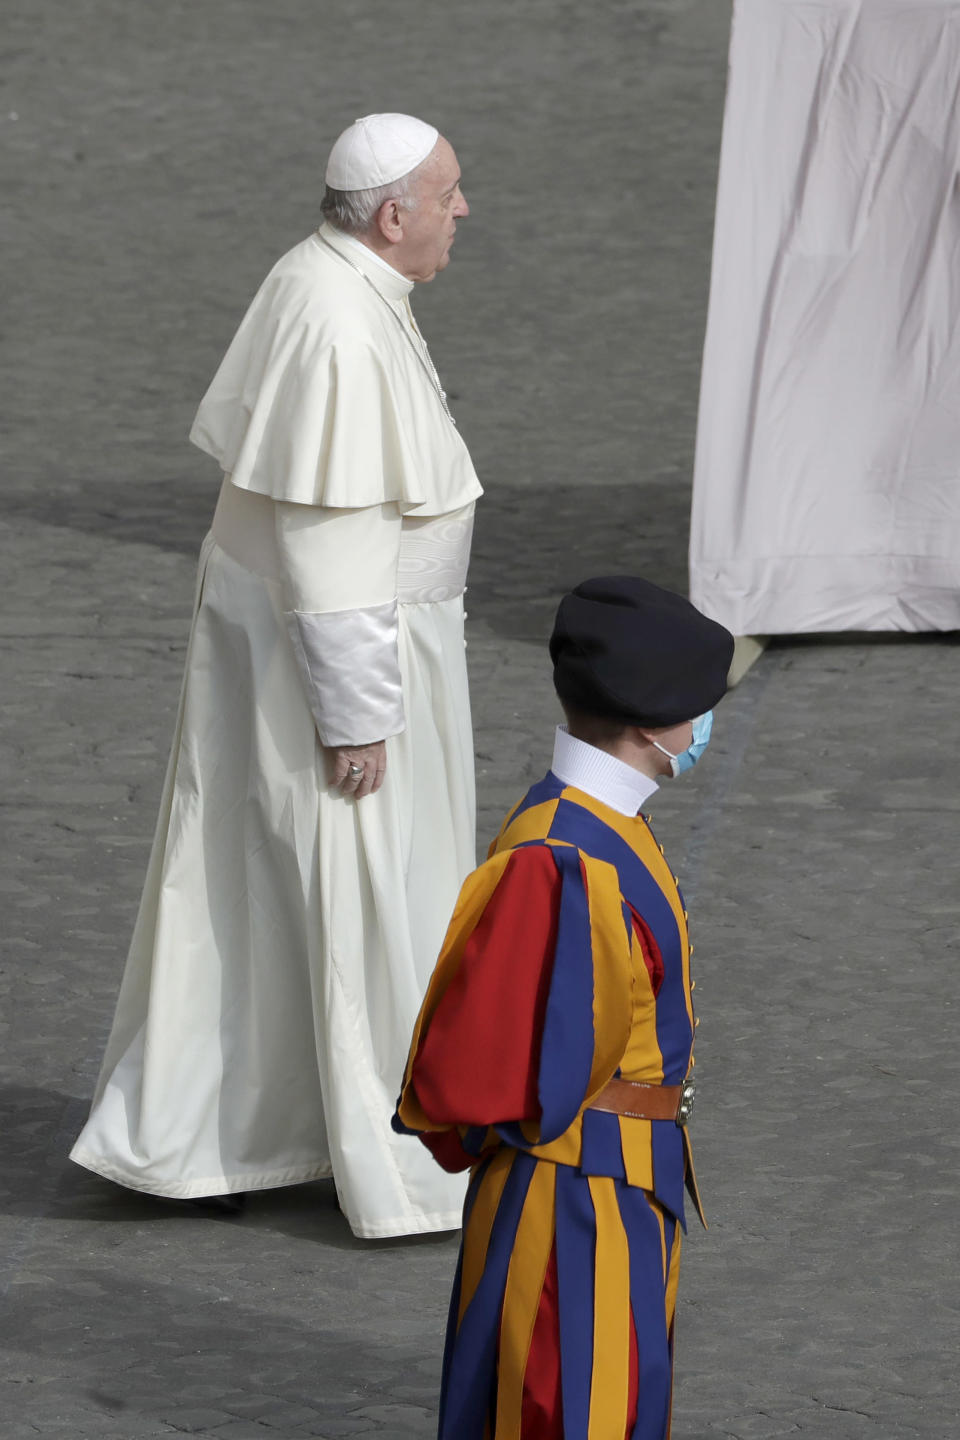 FILE - In this Sept. 2, 2020 file photo, Pope Francis walks by a Vatican Swiss guard wearing a face mask to prevent the spread of COVID-19 as he arrives at the San Damaso courtyard for his general audience, the first with faithful since February when the coronavirus outbreak broke out, at the Vatican. On Monday, Oct. 12, 2020, the Vatican said in a statement that four Swiss Guards have tested positive for the coronavirus, as the surge in infections in surrounding Italy enters the Vatican walls. (AP Photo/Andrew Medichini, file)